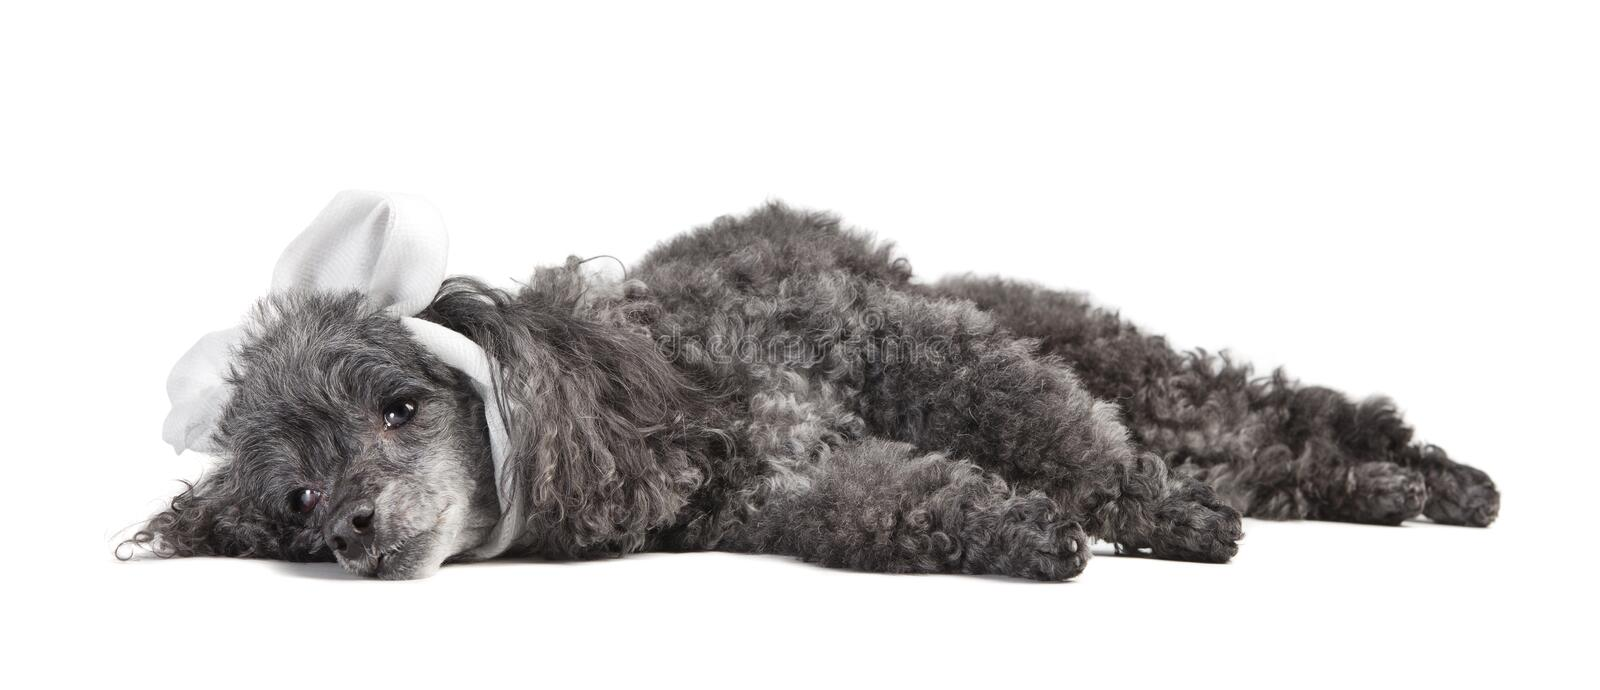 Sick dog cut out. A gray curly poodle dog ill with a bandage around his head, cut out stock image